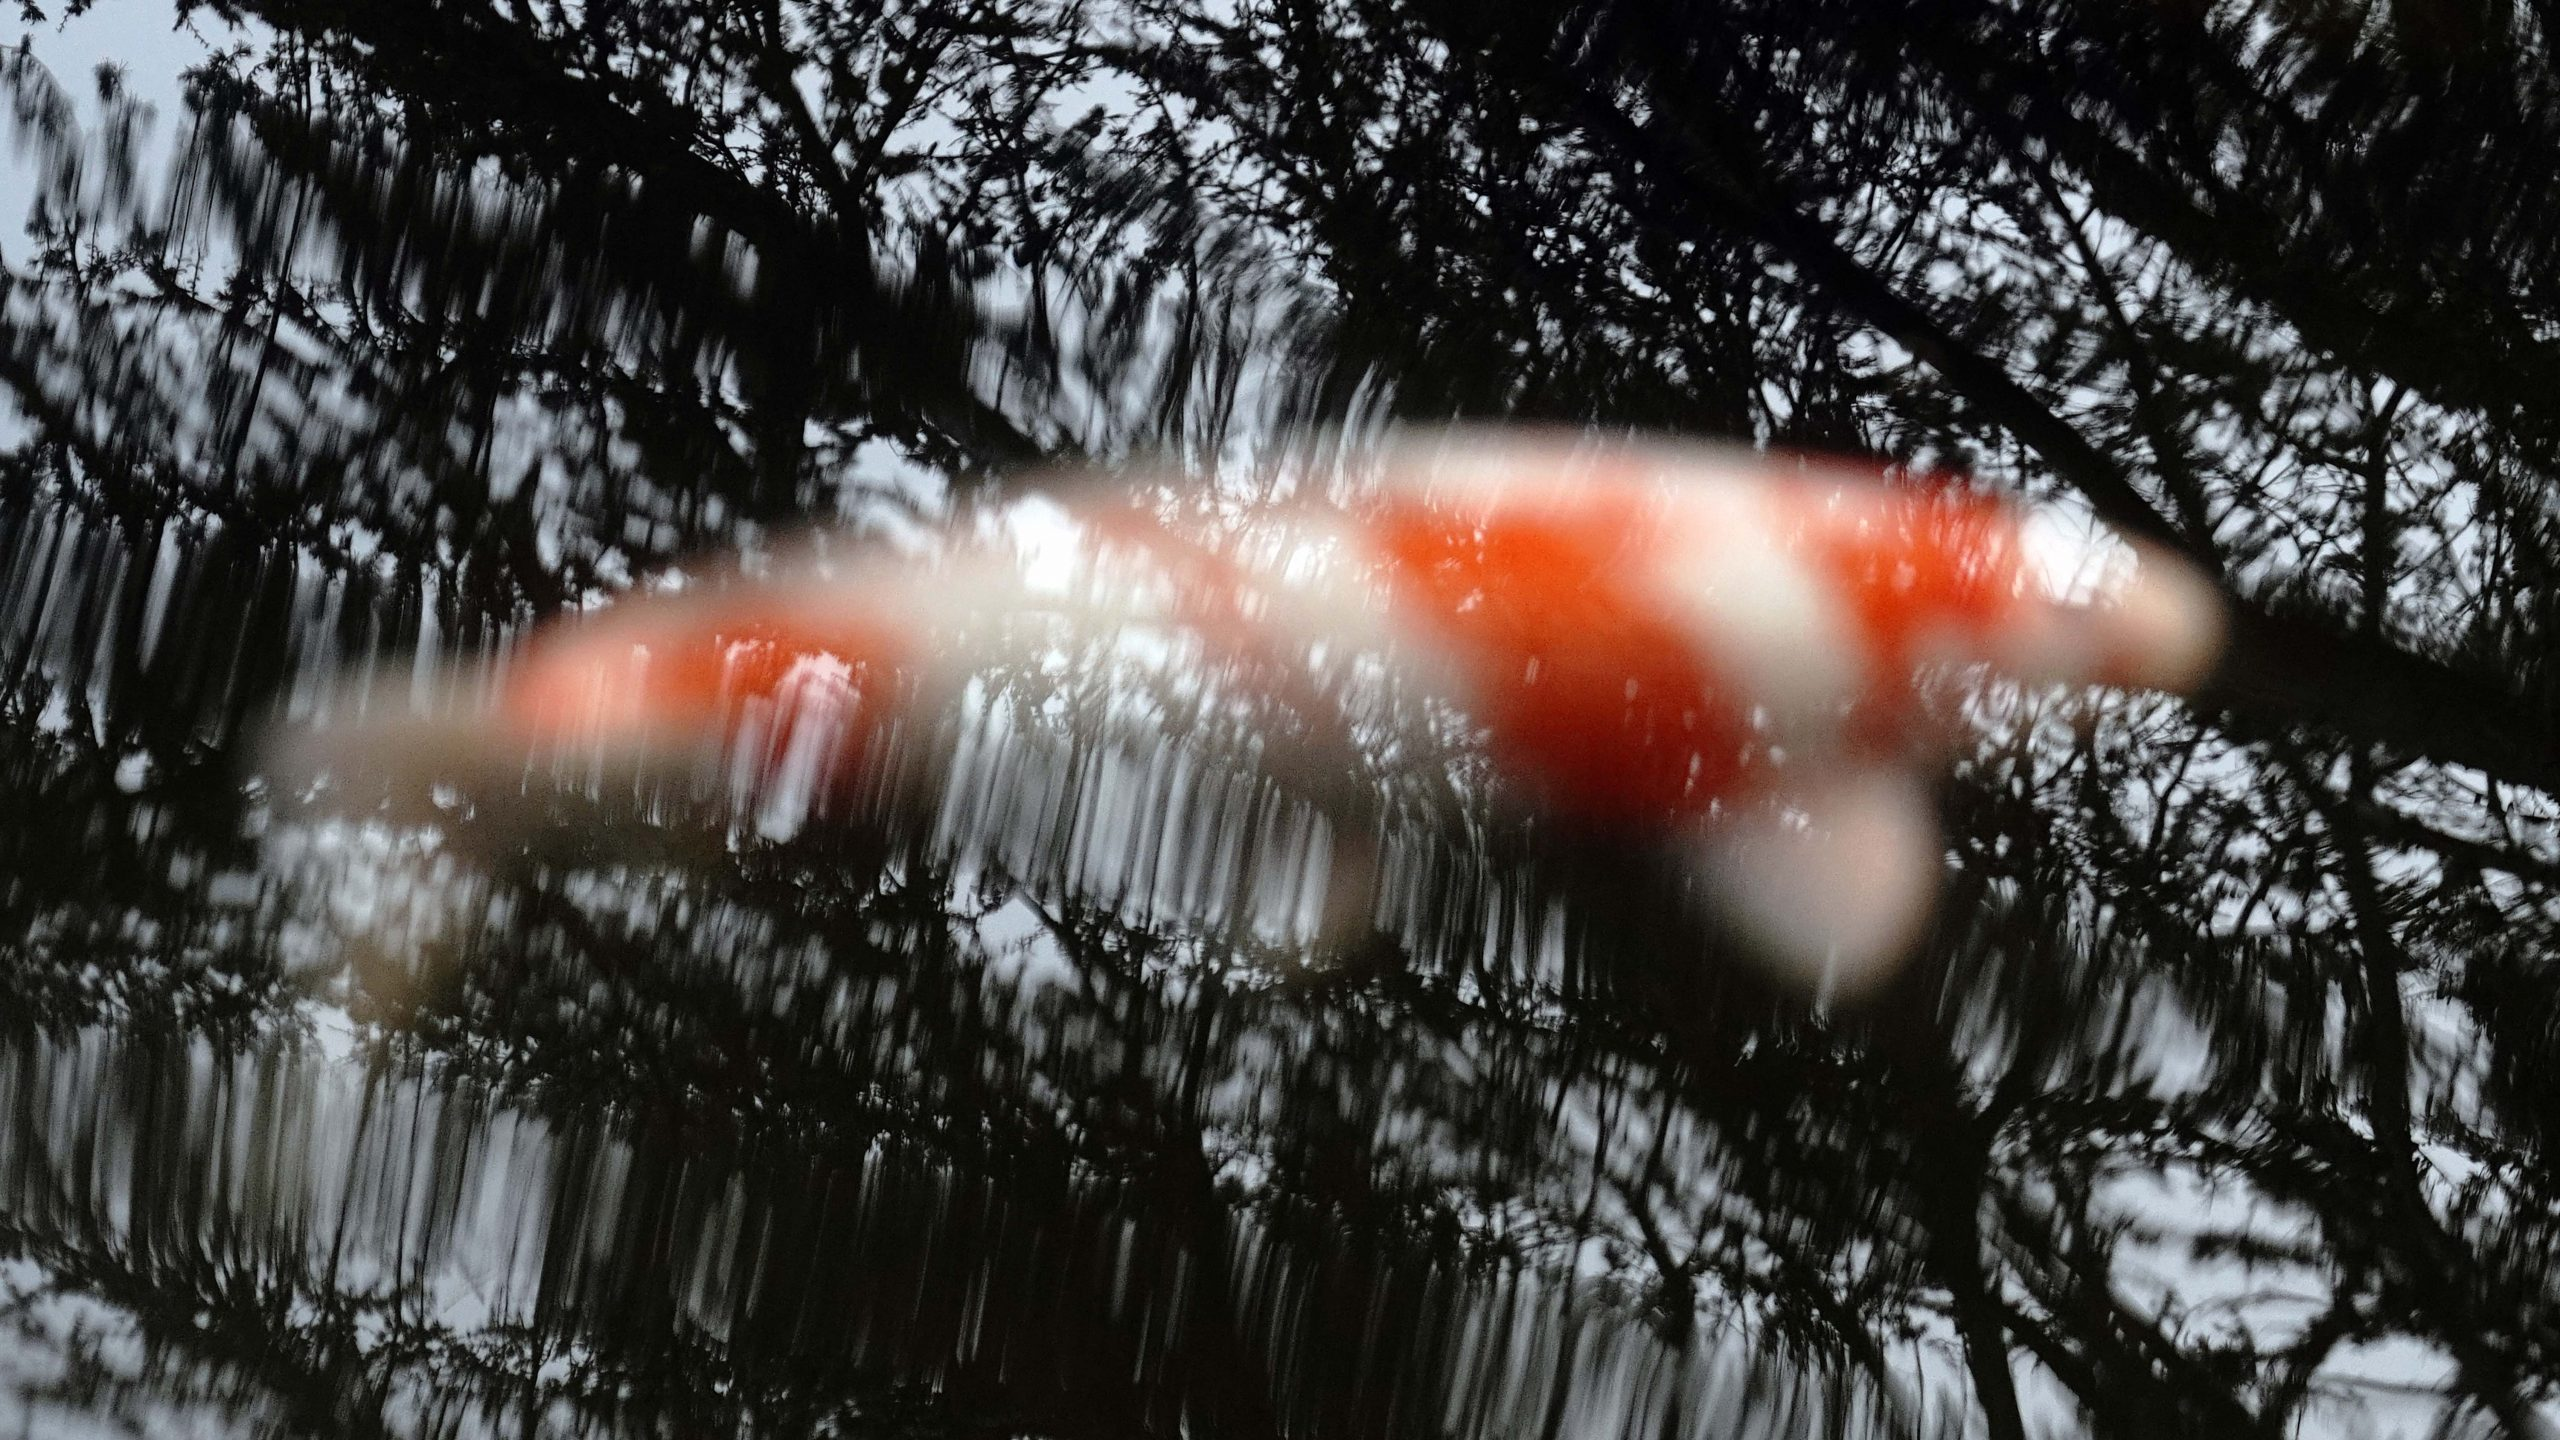 A koi fish in a pond at the Kubota Garden in Seattle